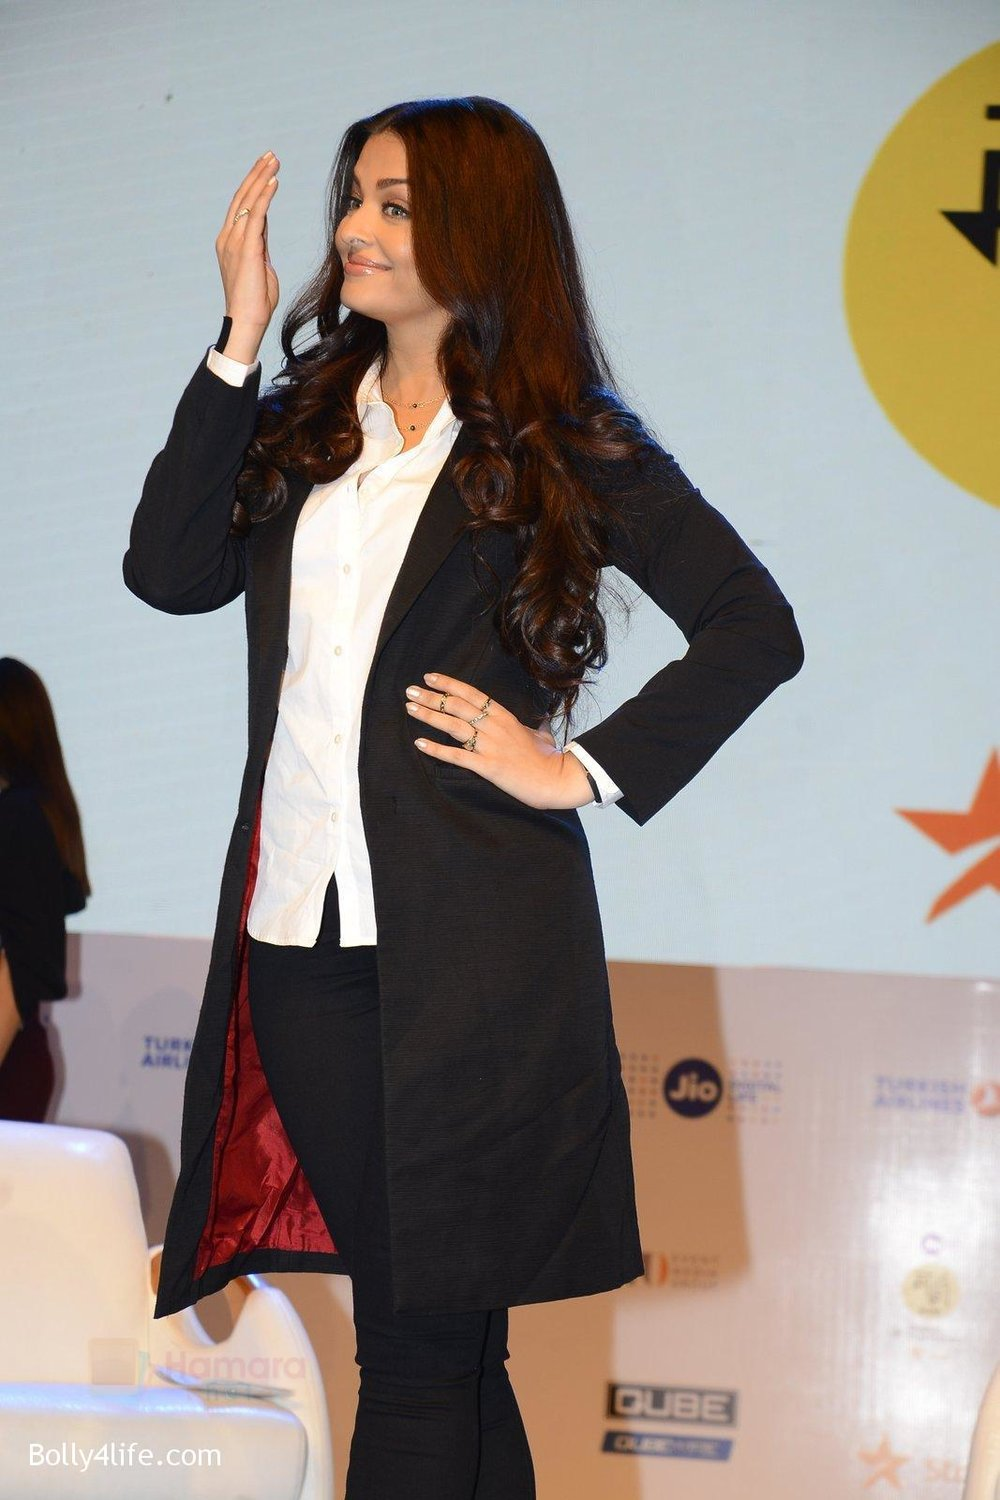 Aishwarya-Rai-talk-about-their-movie-Ae-Dil-Hai-Mushkil-during-the-Jio-MAMI-18th-Mumbai-Film-Festival-with-star-on-21st-Oct-2016-24.jpg